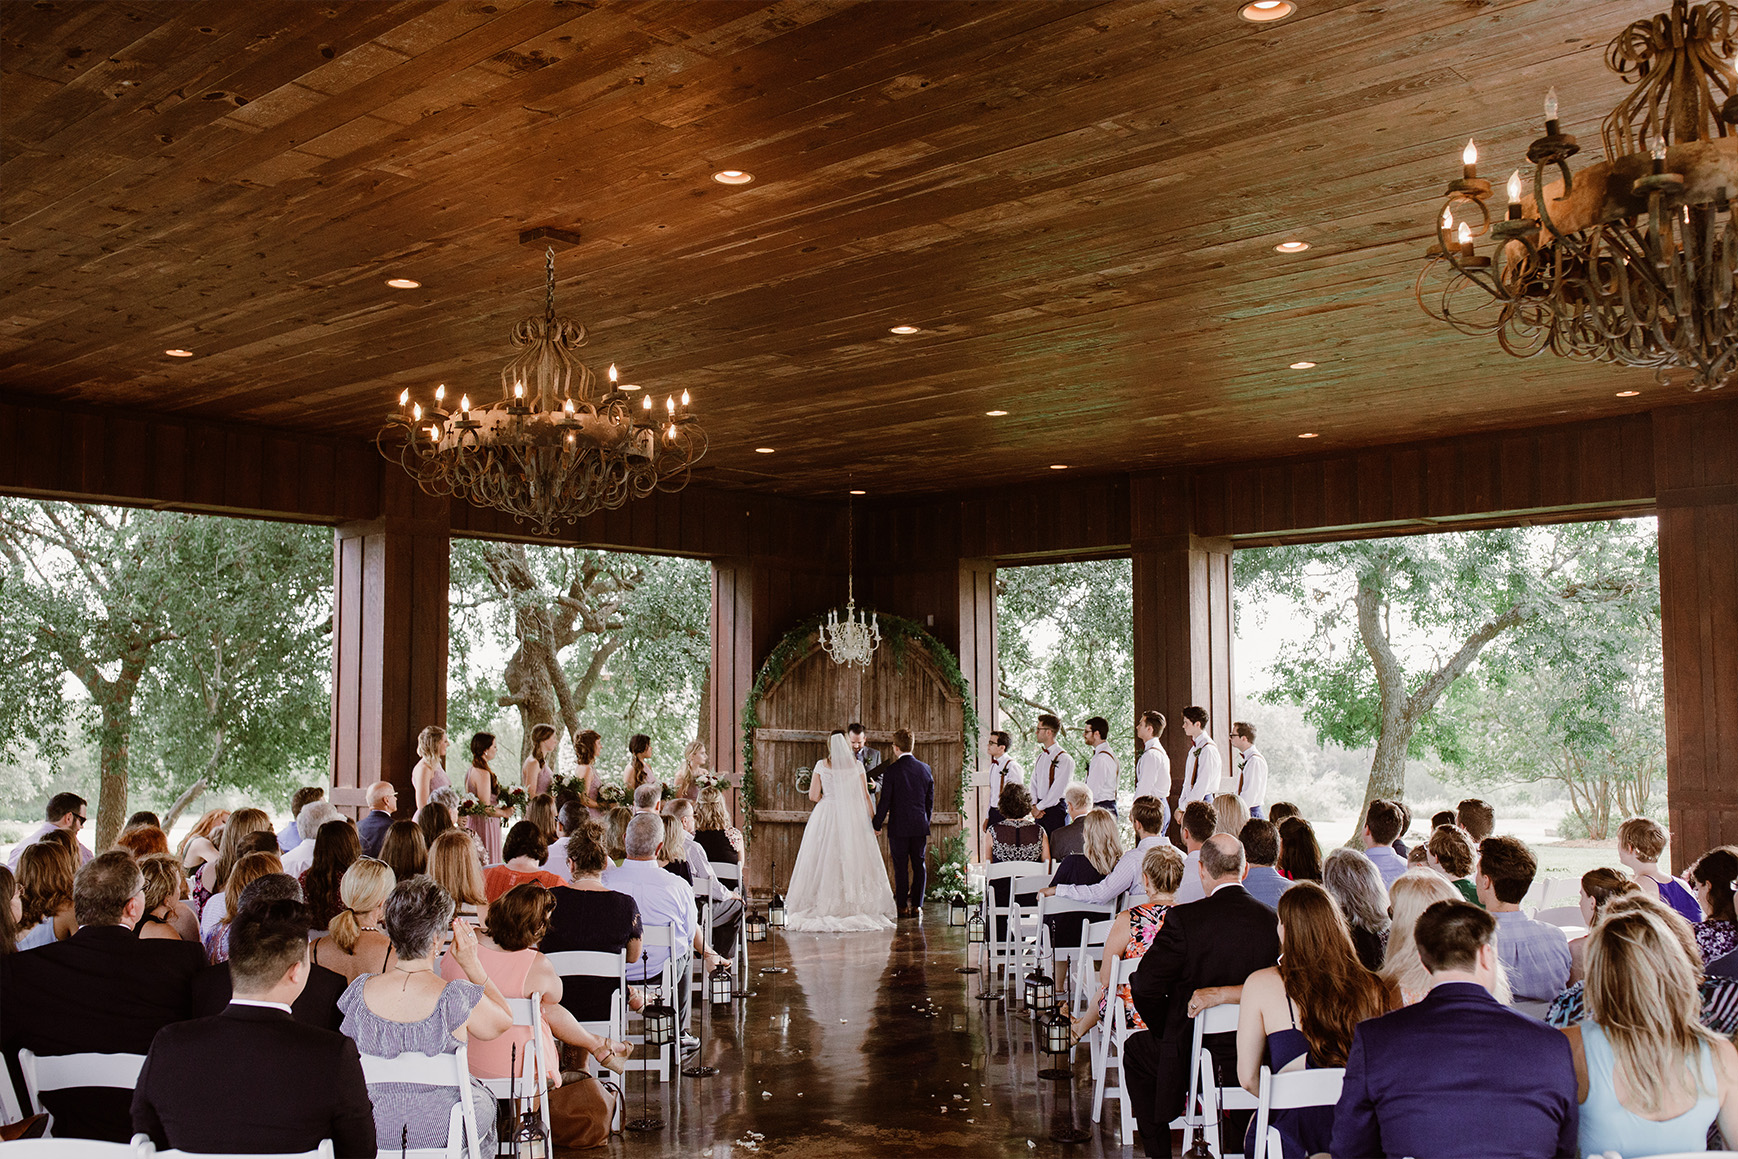 Hofmann Ranch is a Texas wedding venue with an open-air pavilion for wedding receptions